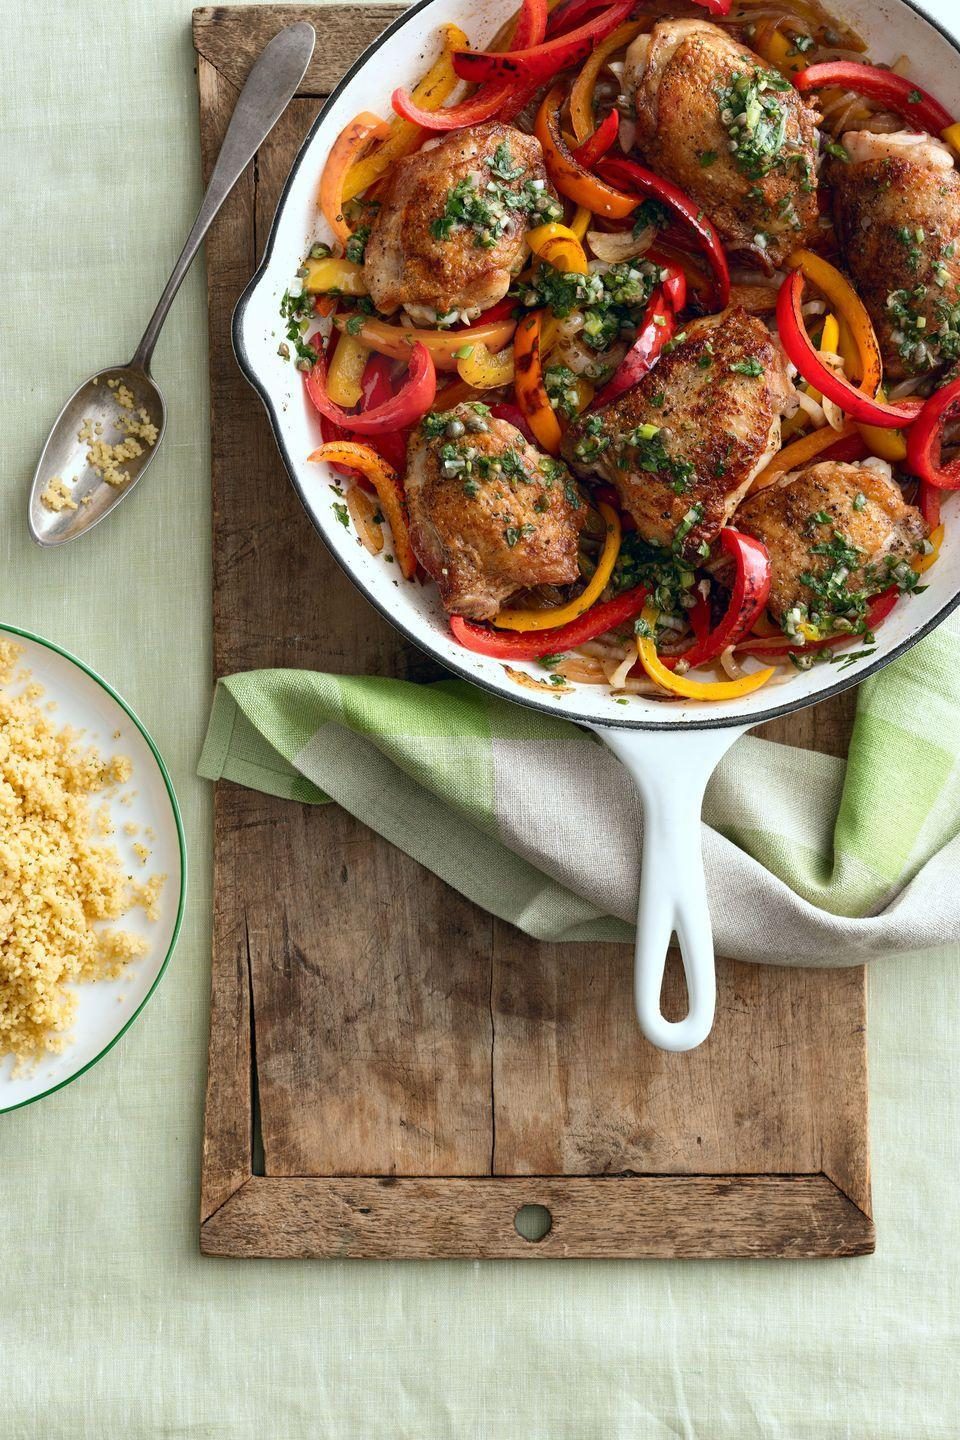 "<p>Spice up your weeknight dinner with this quick and easy chicken recipe.</p><p><strong><a href=""https://www.countryliving.com/food-drinks/recipes/a5501/crispy-chicken-thighs-with-peppers-and-salsa-verde-recipe-clx0914/"" rel=""nofollow noopener"" target=""_blank"" data-ylk=""slk:Get the recipe"" class=""link rapid-noclick-resp"">Get the recipe</a>.</strong><br></p><p><a class=""link rapid-noclick-resp"" href=""https://www.amazon.com/Lodge-Skillet-Pre-Seasoned-Skillet-Stovetop/dp/B00006JSUA?tag=syn-yahoo-20&ascsubtag=%5Bartid%7C10050.g.648%5Bsrc%7Cyahoo-us"" rel=""nofollow noopener"" target=""_blank"" data-ylk=""slk:SHOP CAST IRON SKILLETS"">SHOP CAST IRON SKILLETS</a></p>"